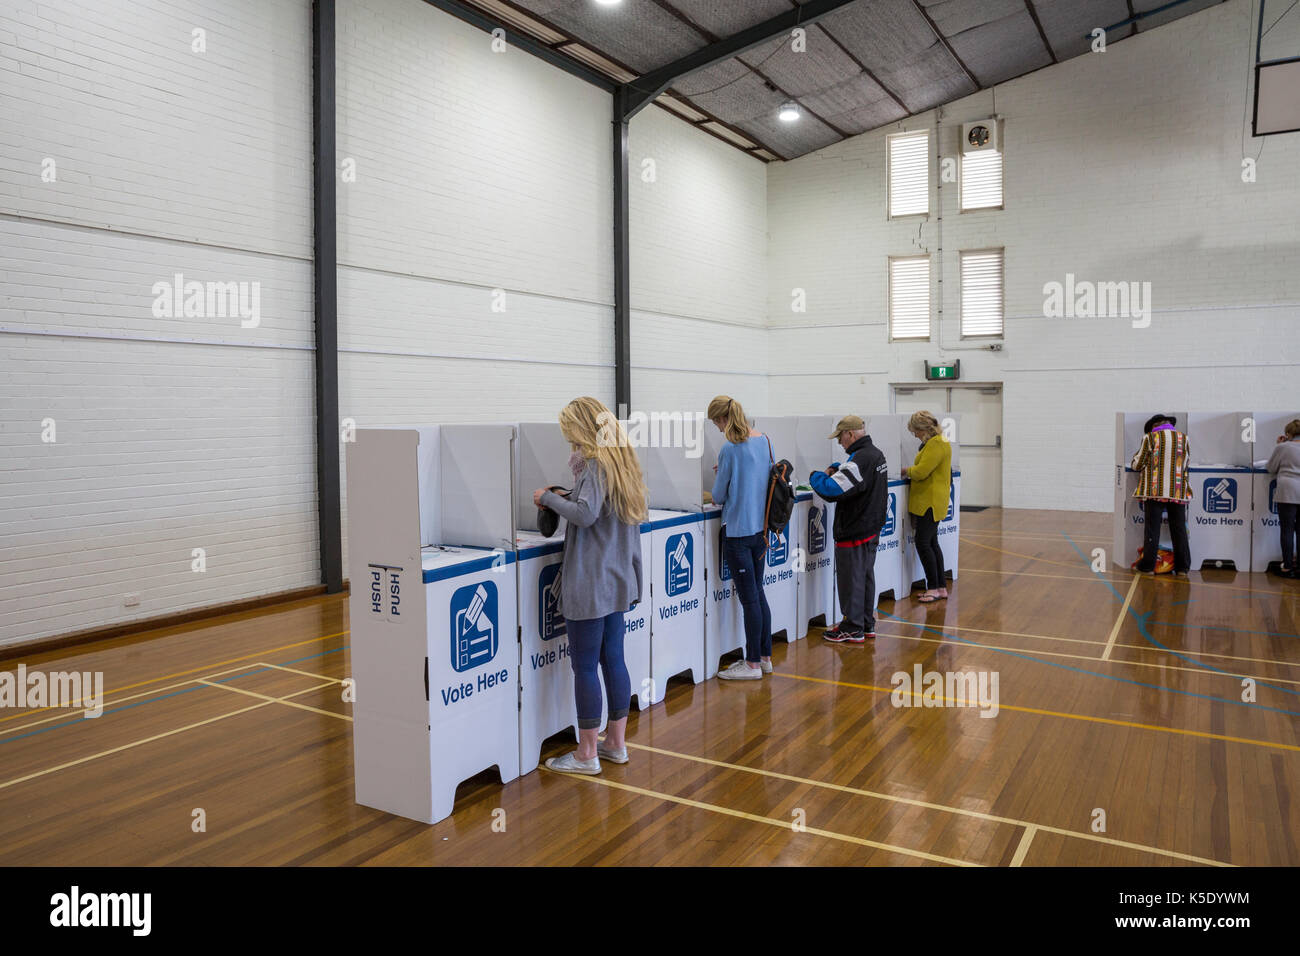 People voting in elections in Australia inside a polling station in Sydney,Australia - Stock Image